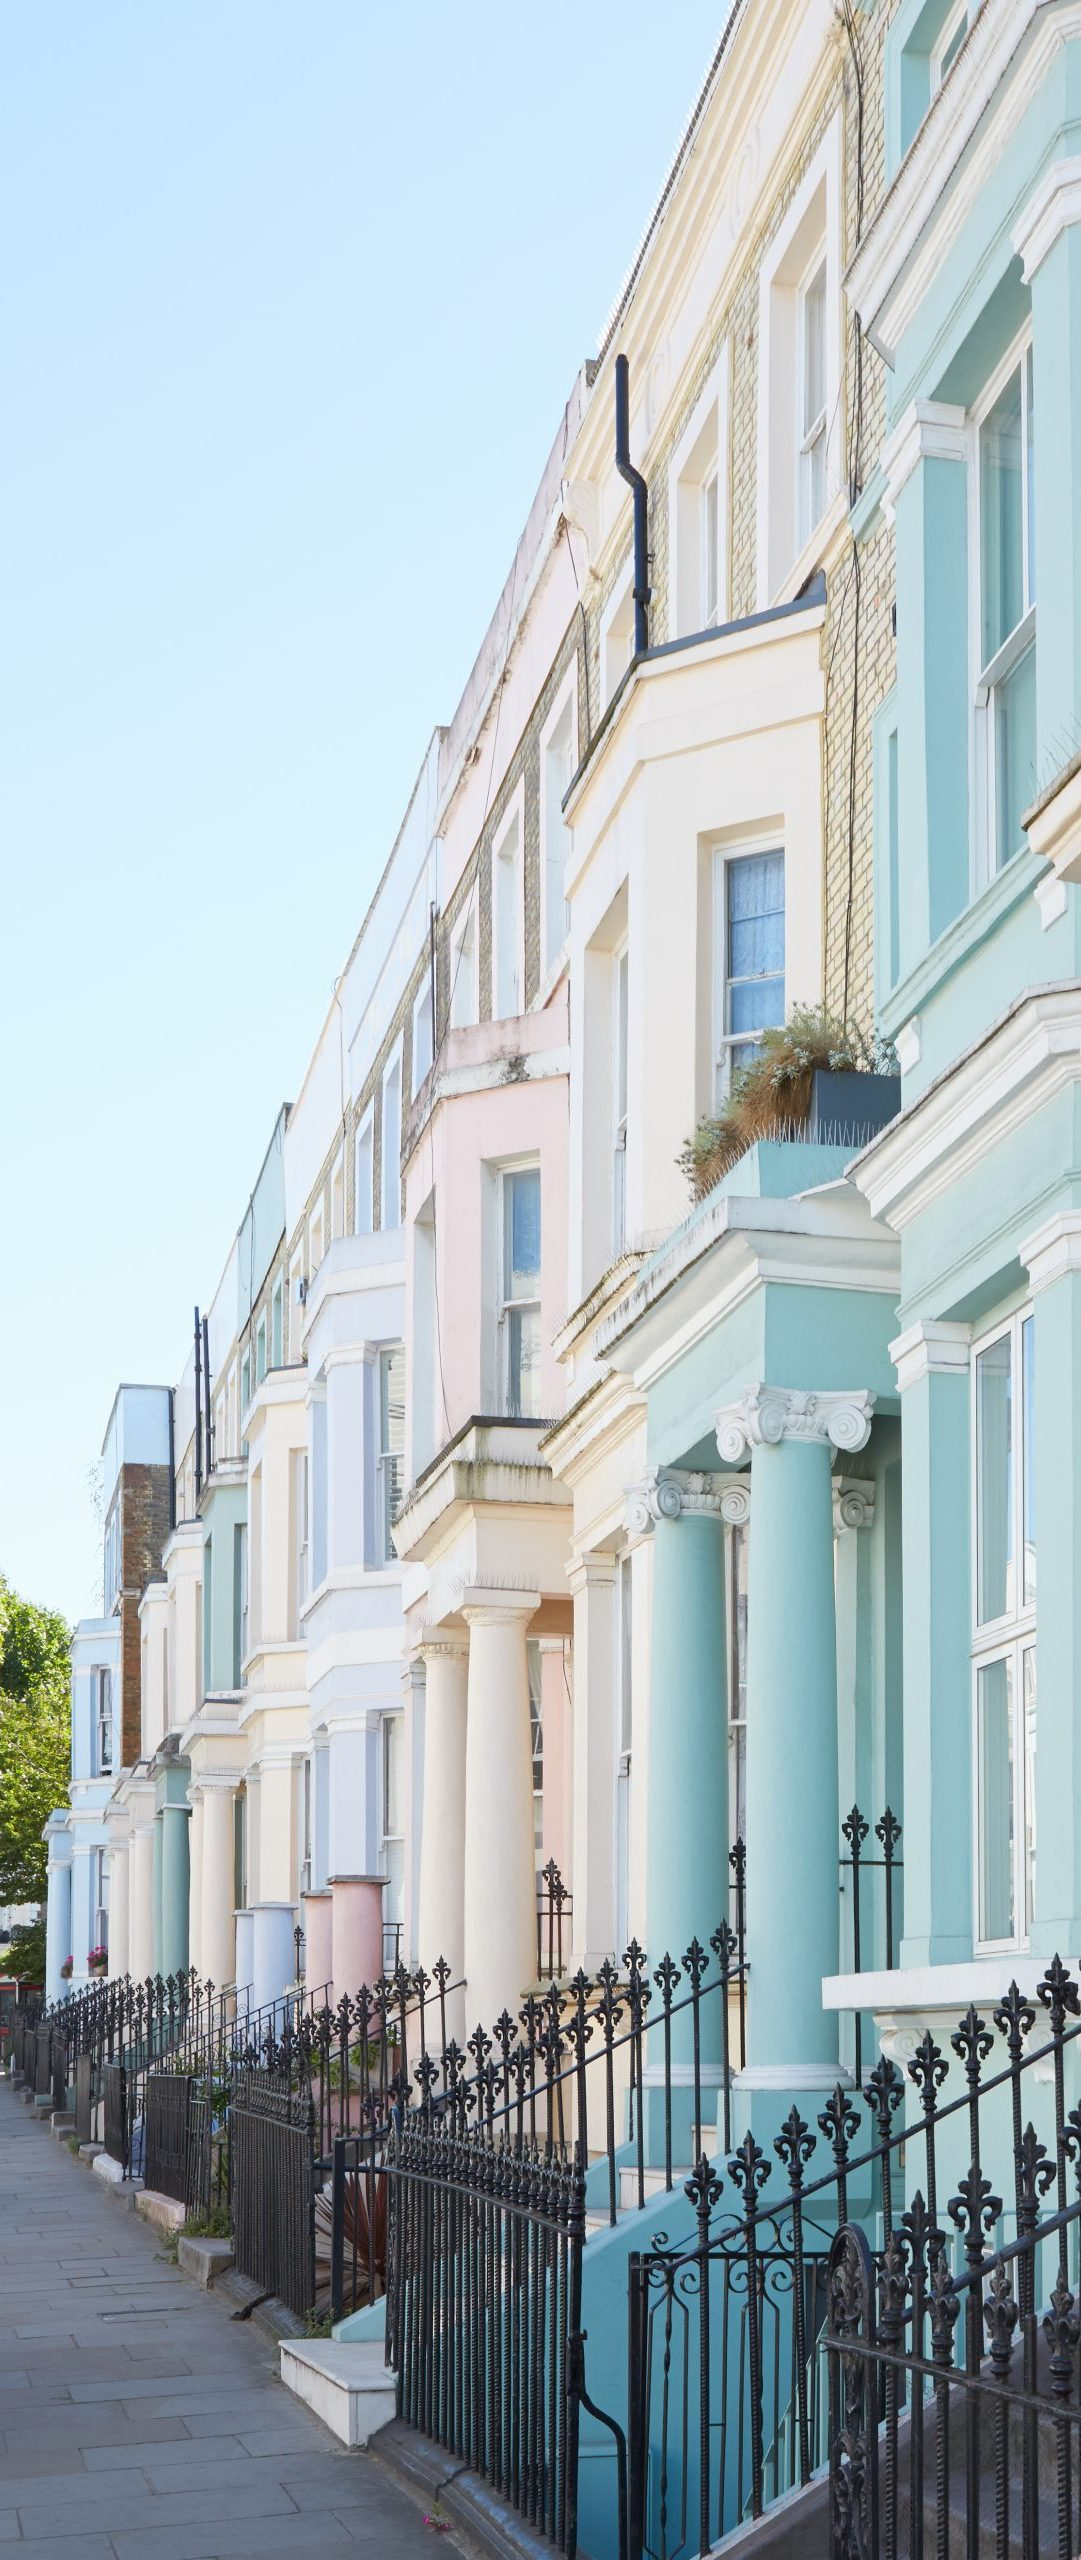 Regulated Buy to Let